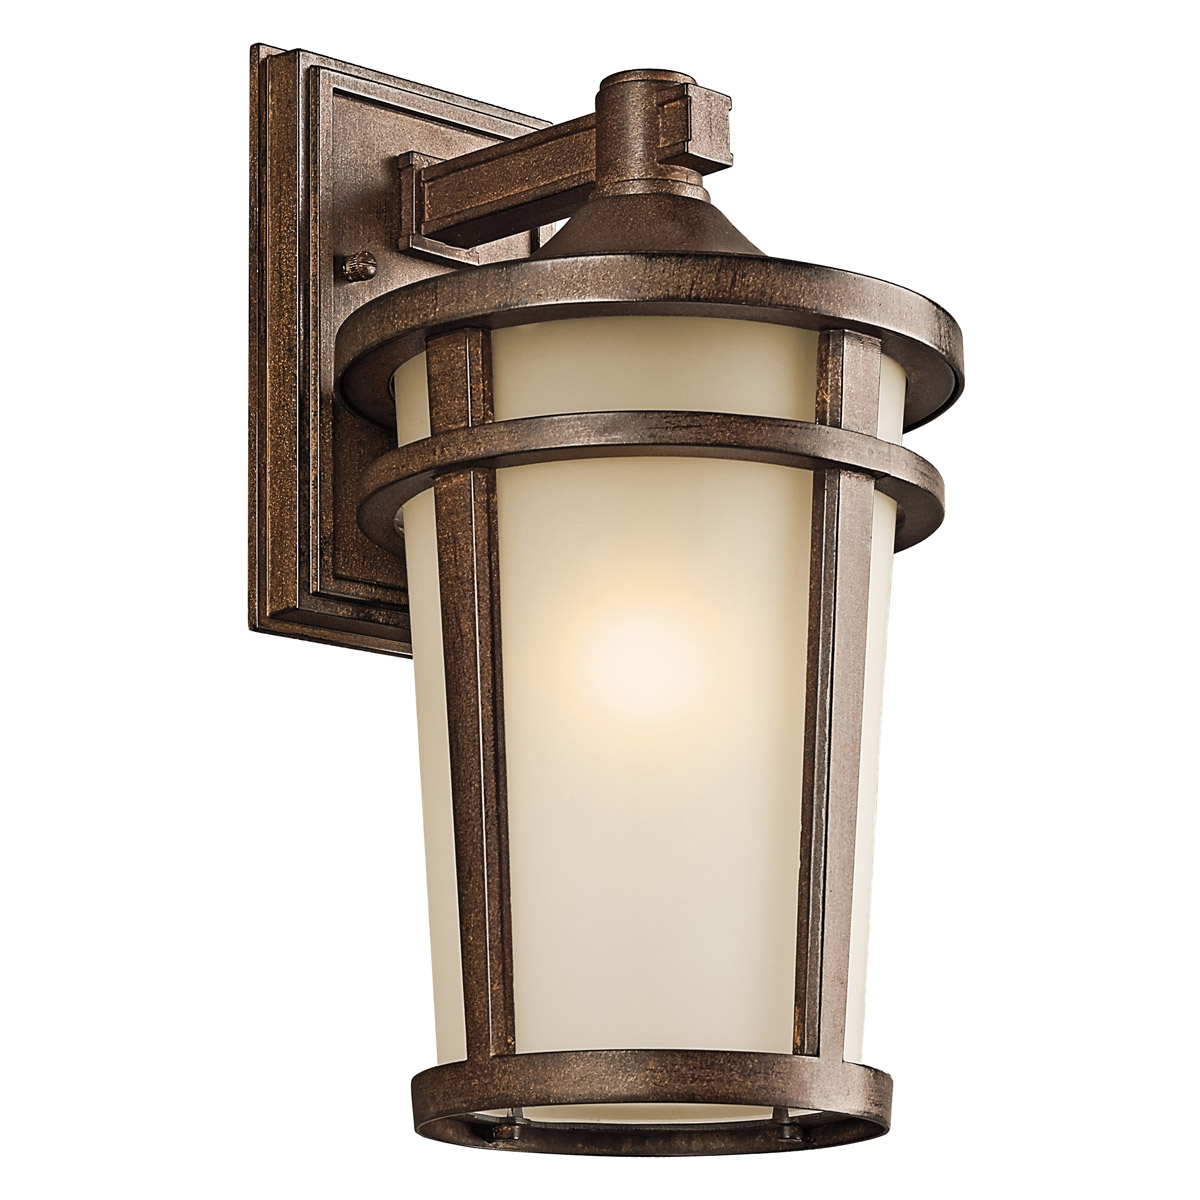 wall mounted exterior light fixtures photo - 1